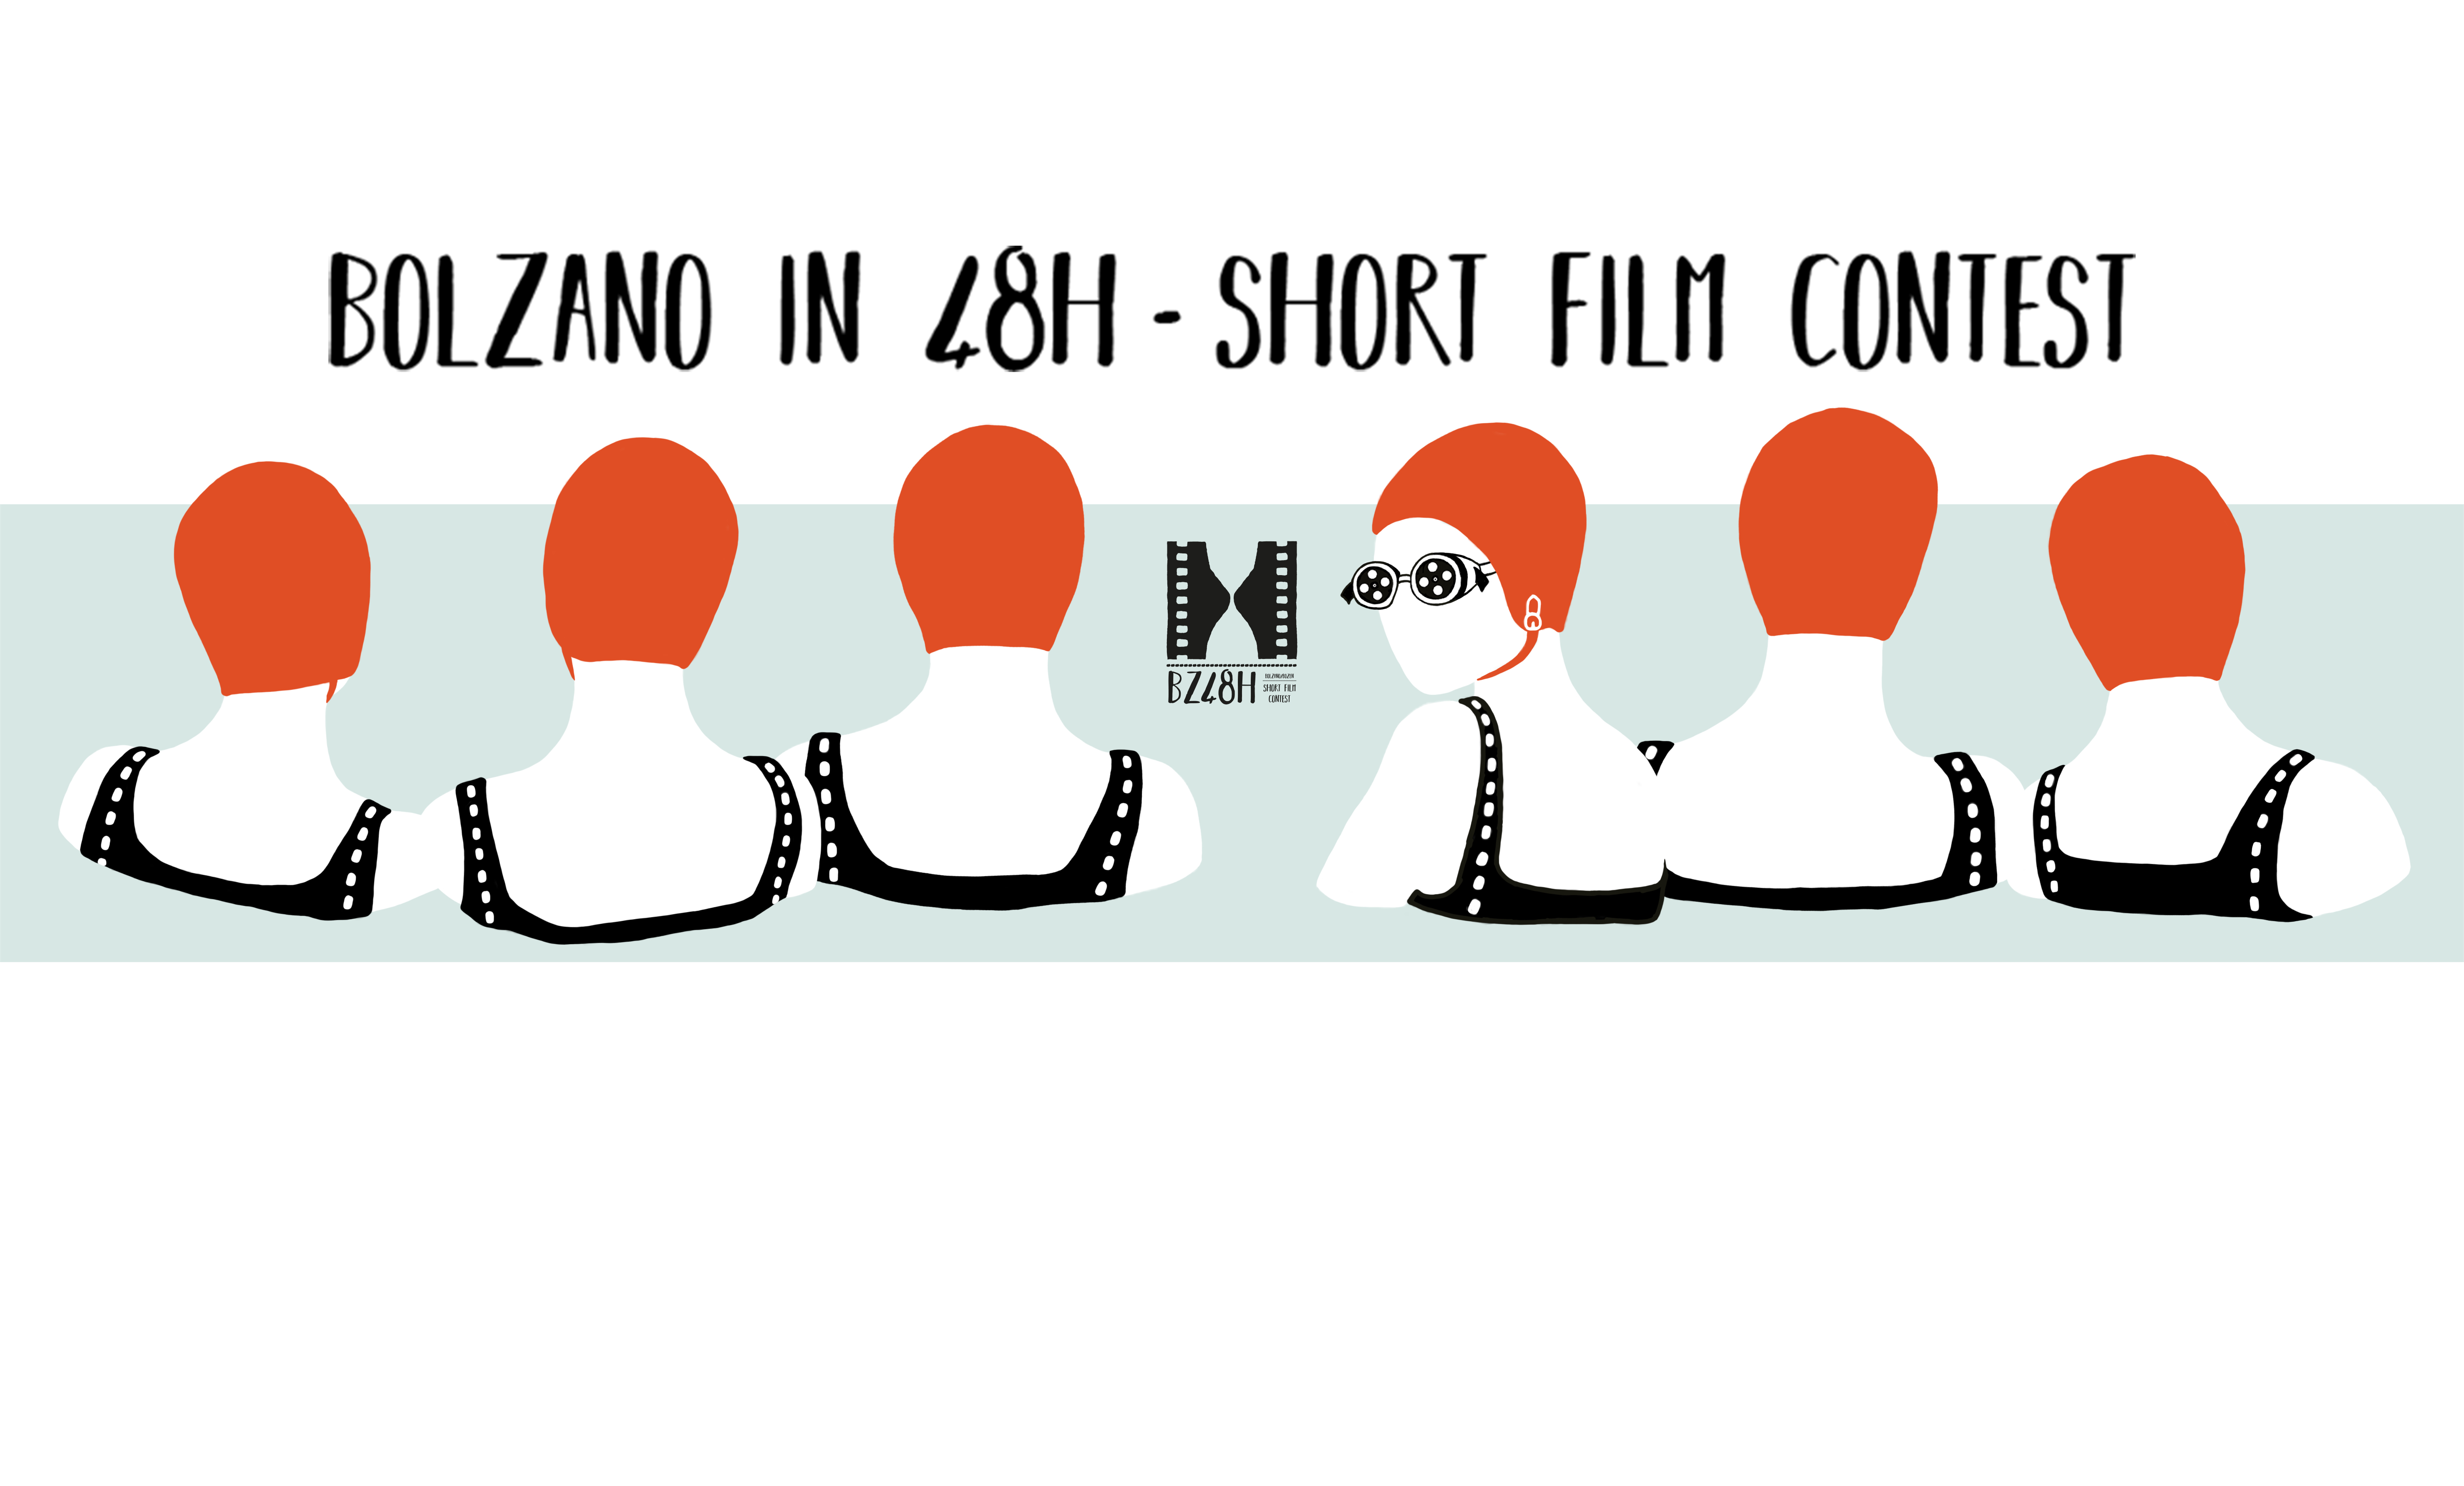 Bolzano in 48h - Short Film Contest - Bolzano (Italy) on ...